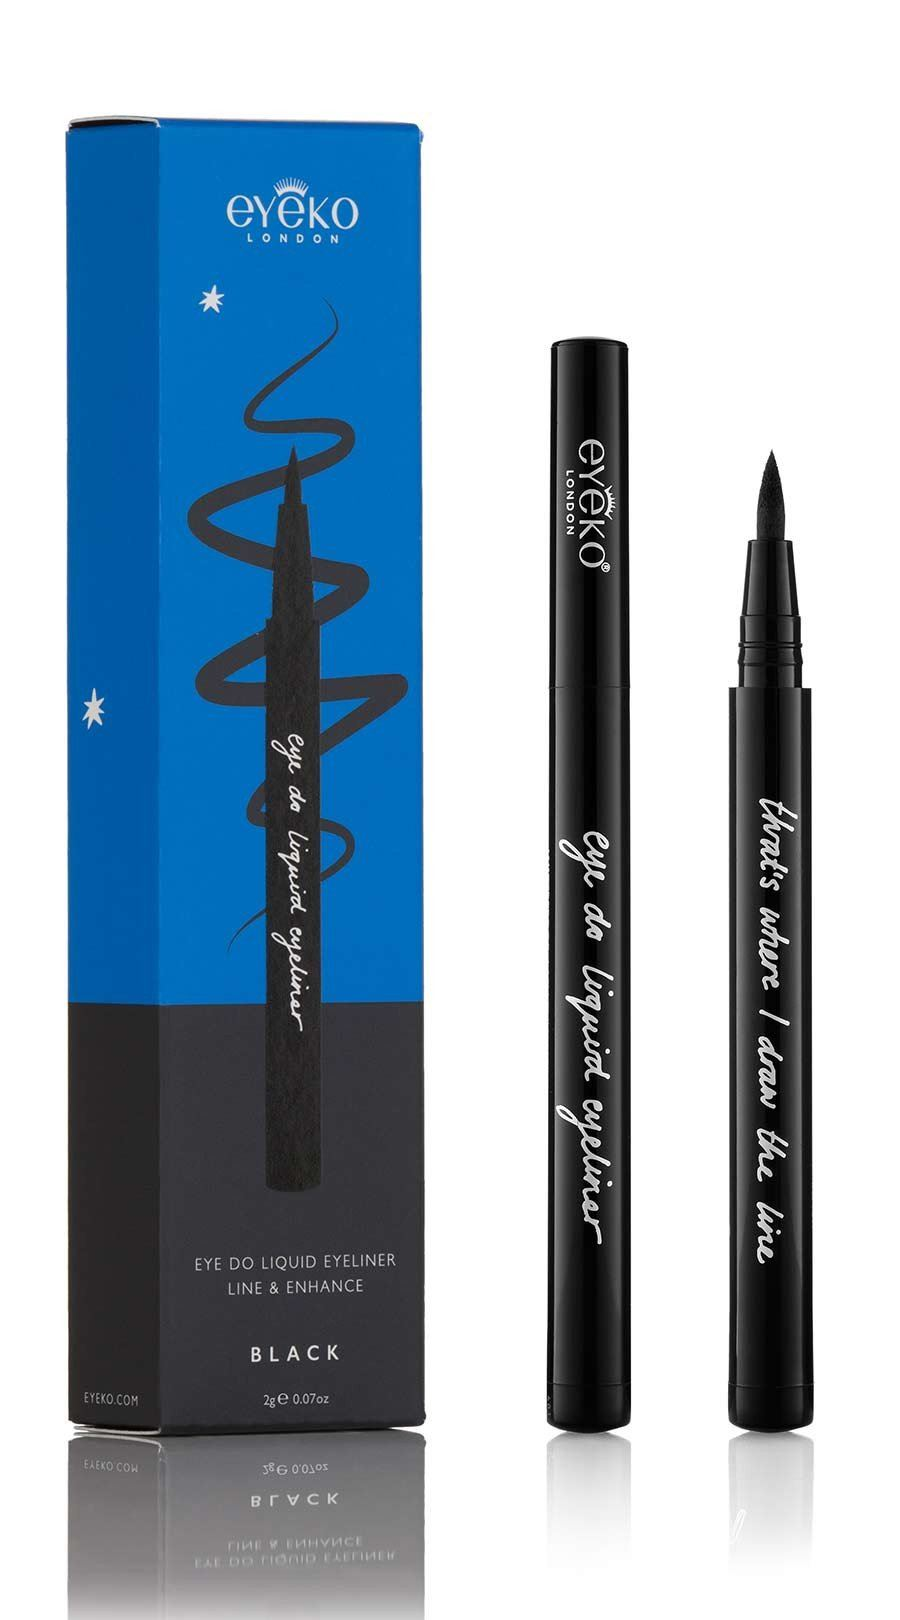 Eyeko Eye Do Eyeliner Cosmetics - Eye Eyeko